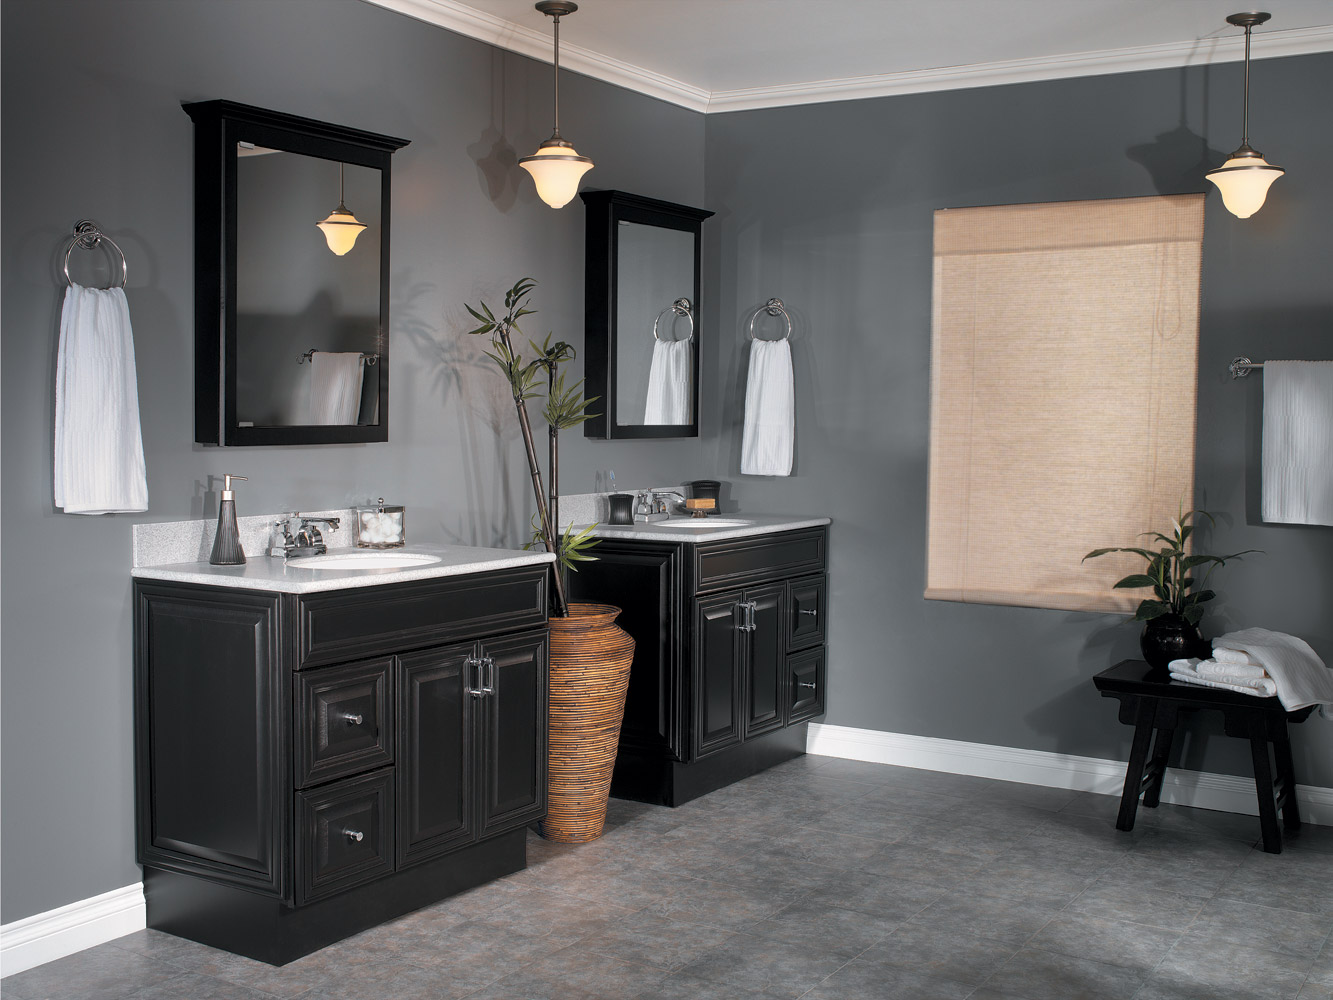 The best bathroom vanity ideas midcityeast for The best bathroom design